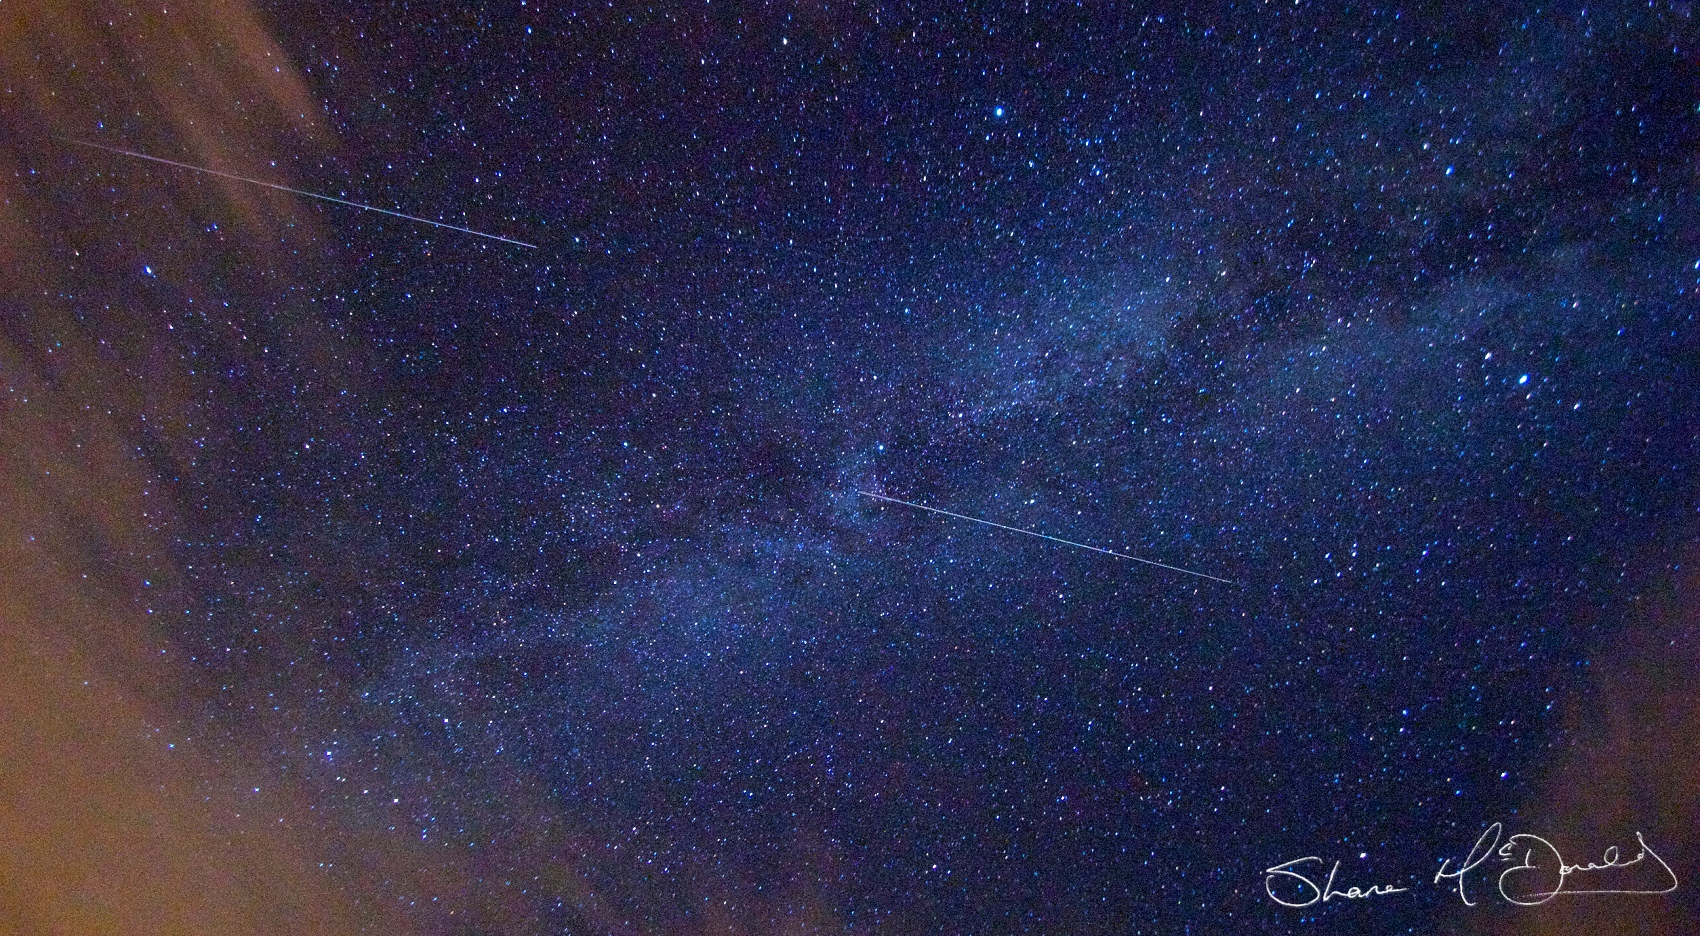 Photo of Peresid Meteor Shower - How to photograph the peresid / persid meteor shower and Milky Way